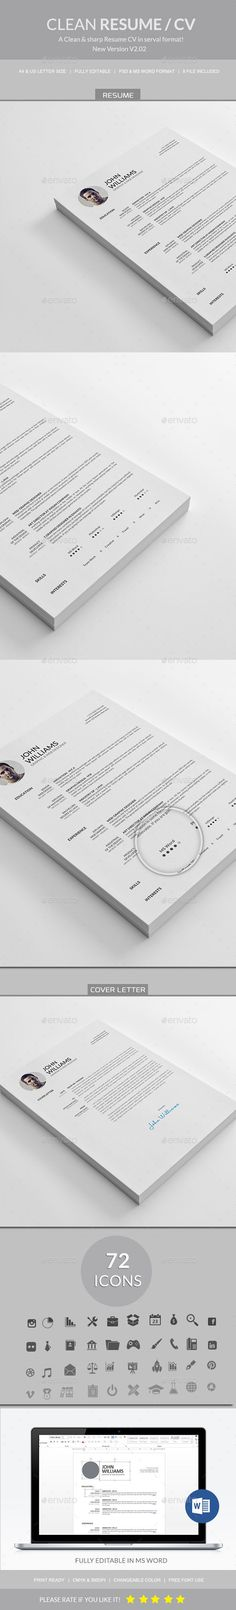 Experience - CV\/Resume PSD Template Psd templates - resume form download